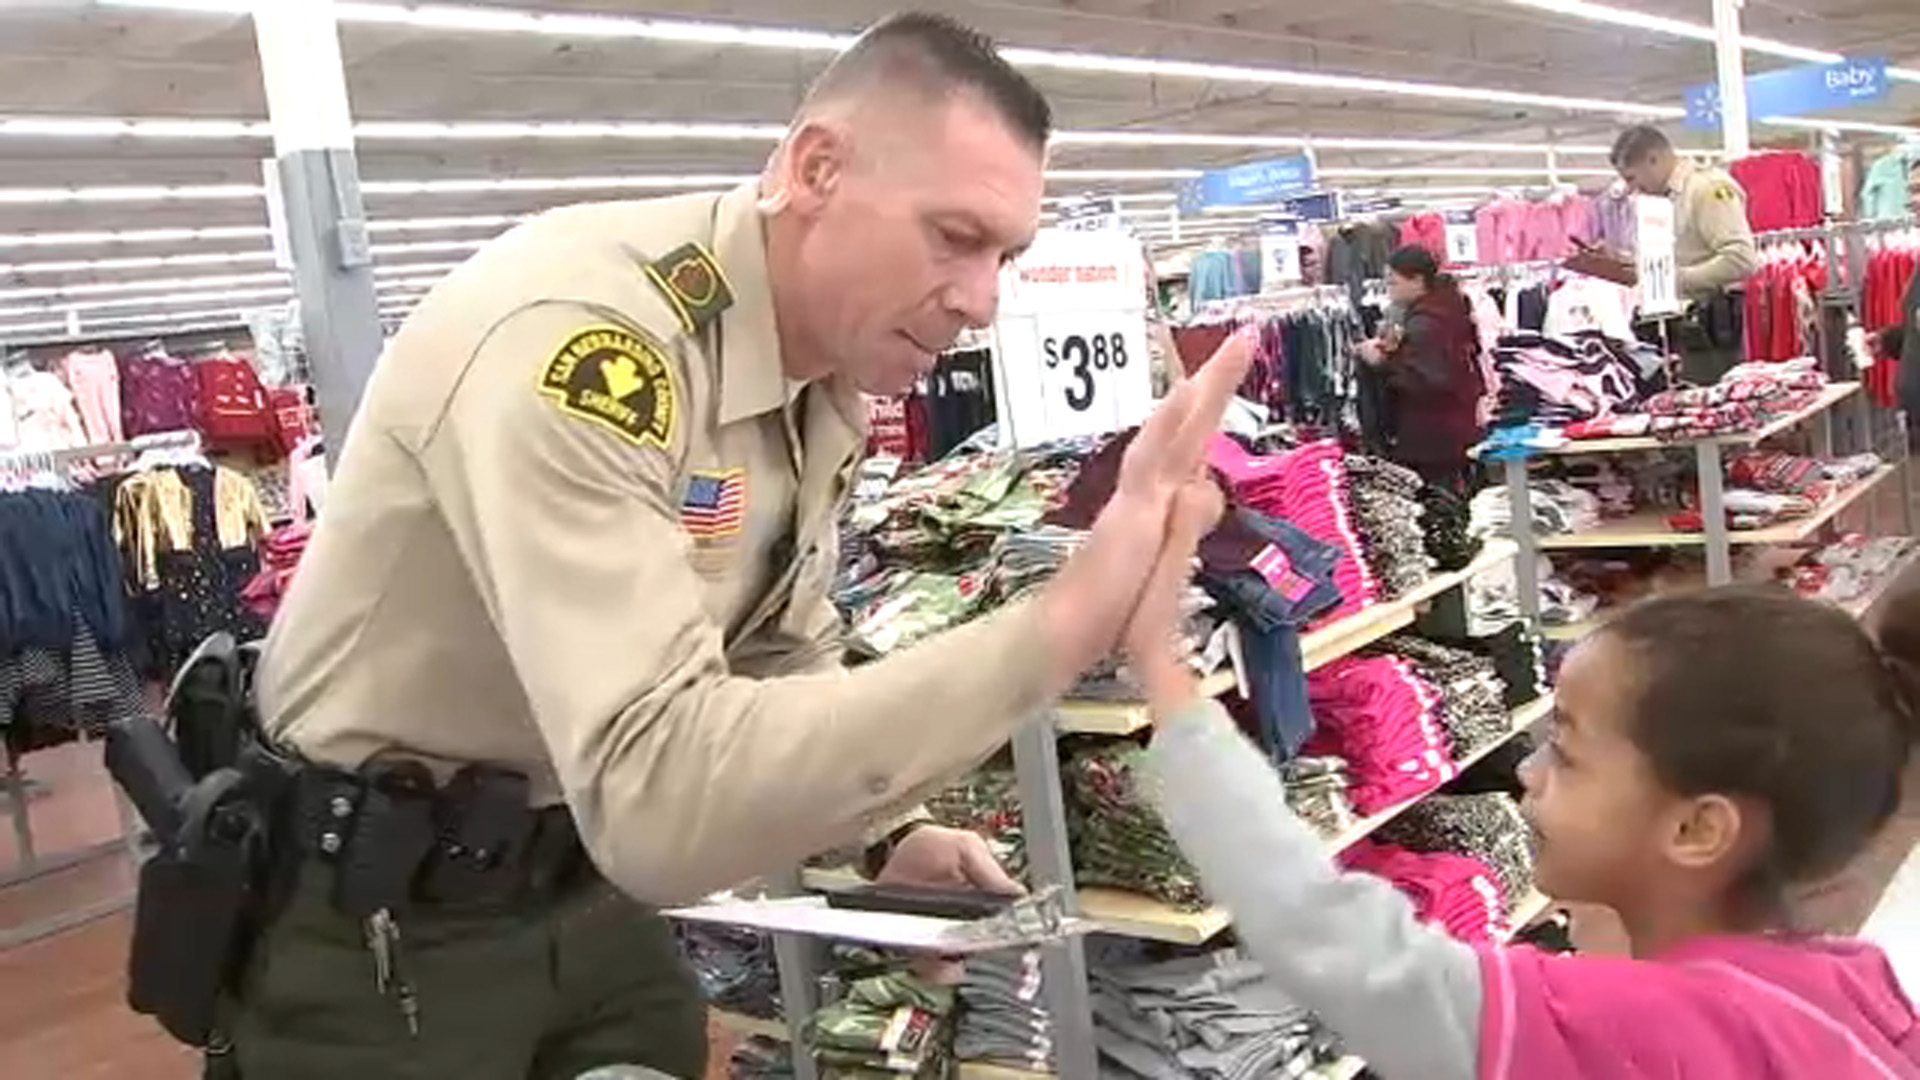 Children from all over San Bernardino County got to buy Christmas gifts for their families and other items at Walmart as part of a Shop With a Cop event.